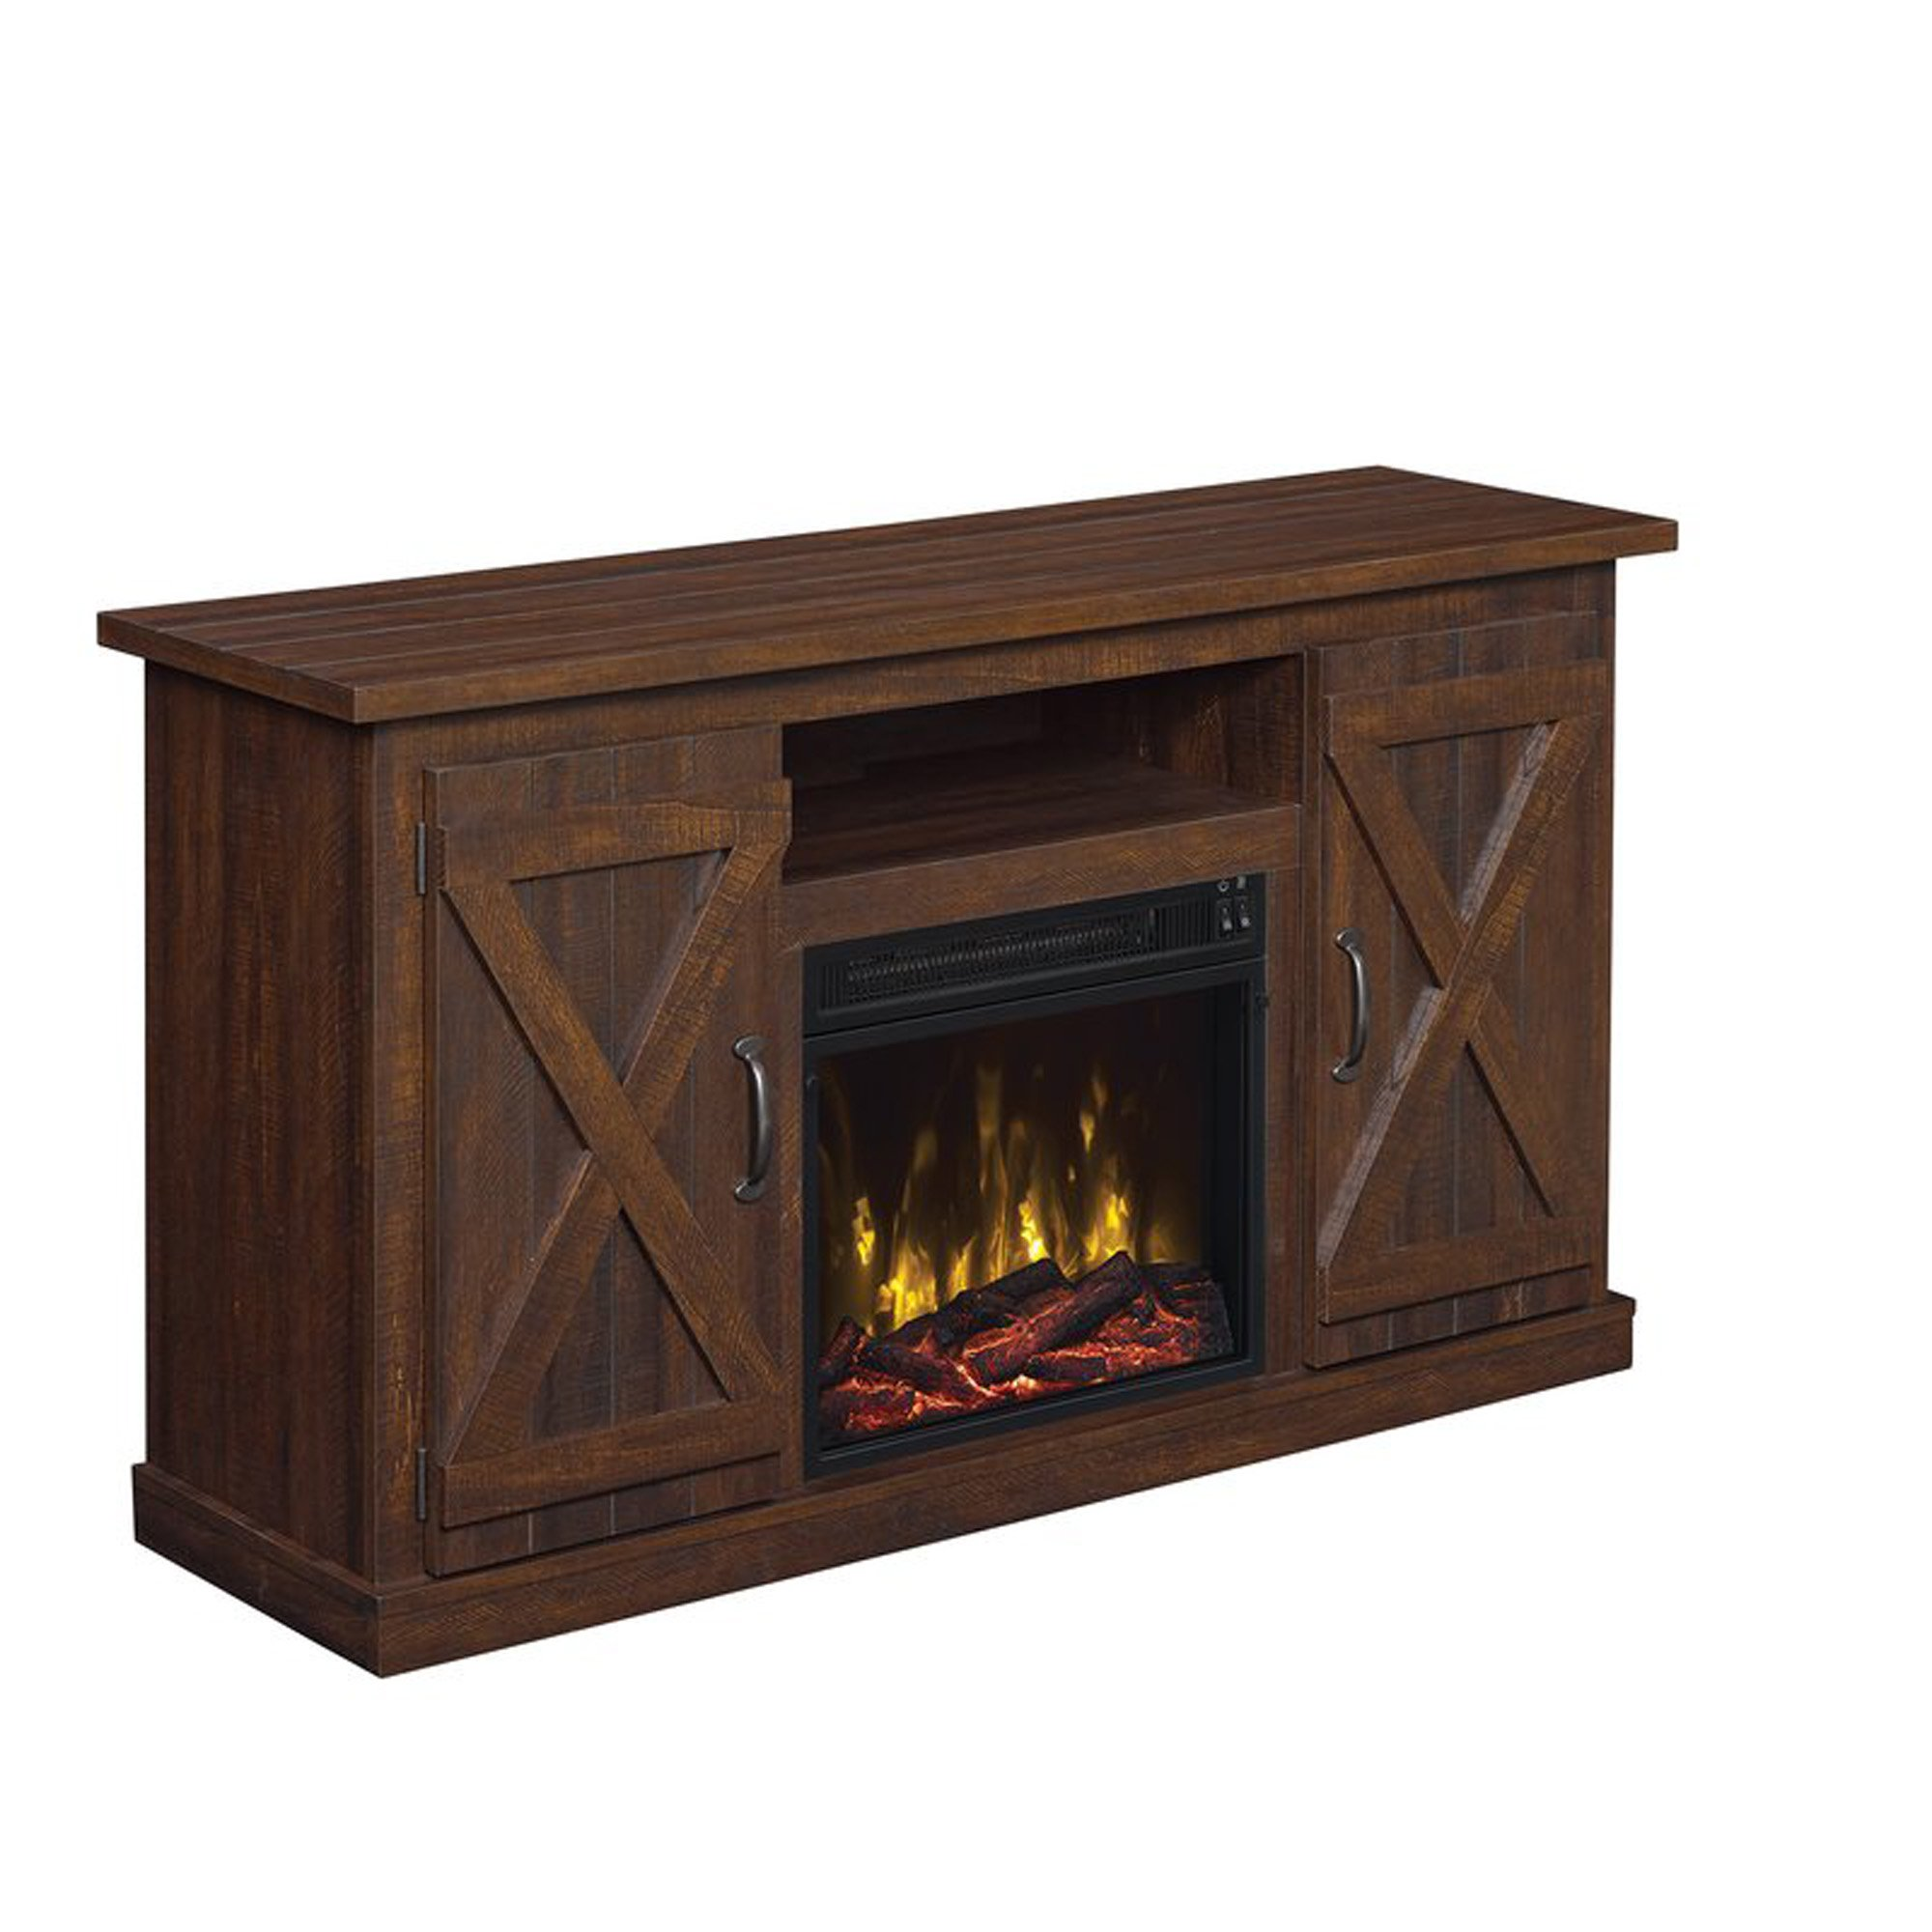 Industrial 48'' TV Stand - Antique Rustic Look - Electric Fireplace Heater - Vintage Design (Saw Cut Espresso)